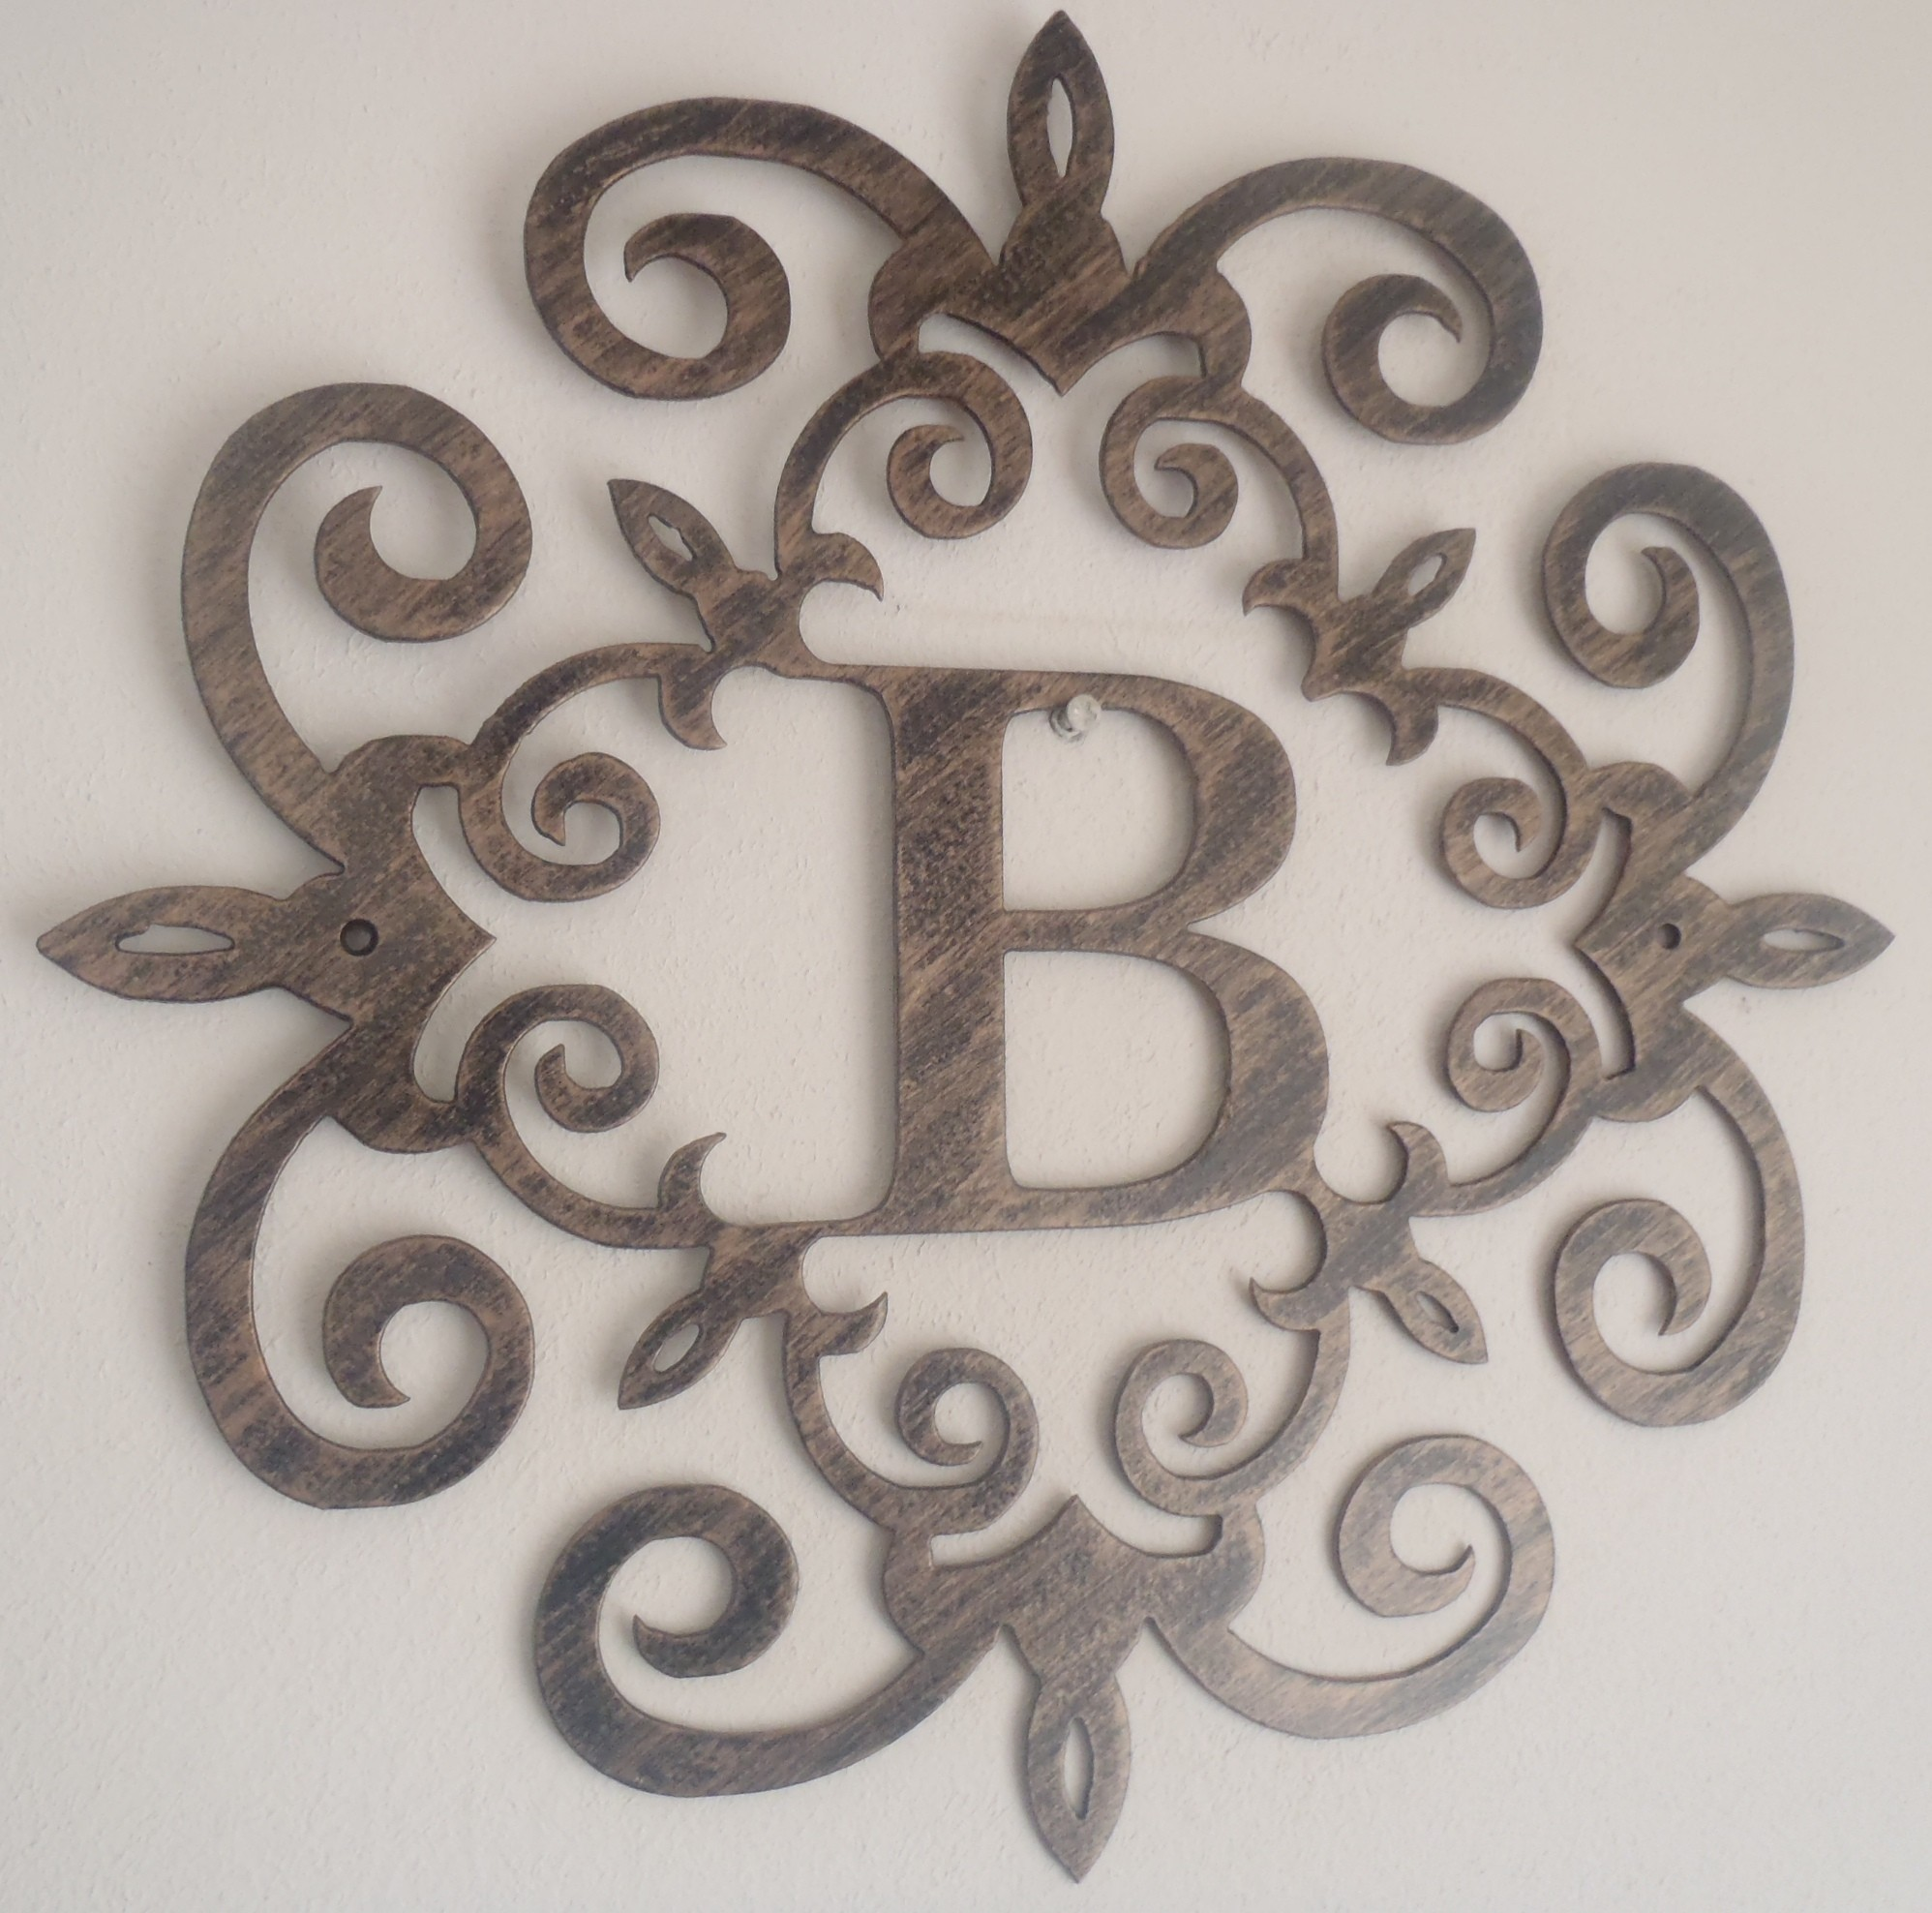 B Large Metal Letters For Wall Decor